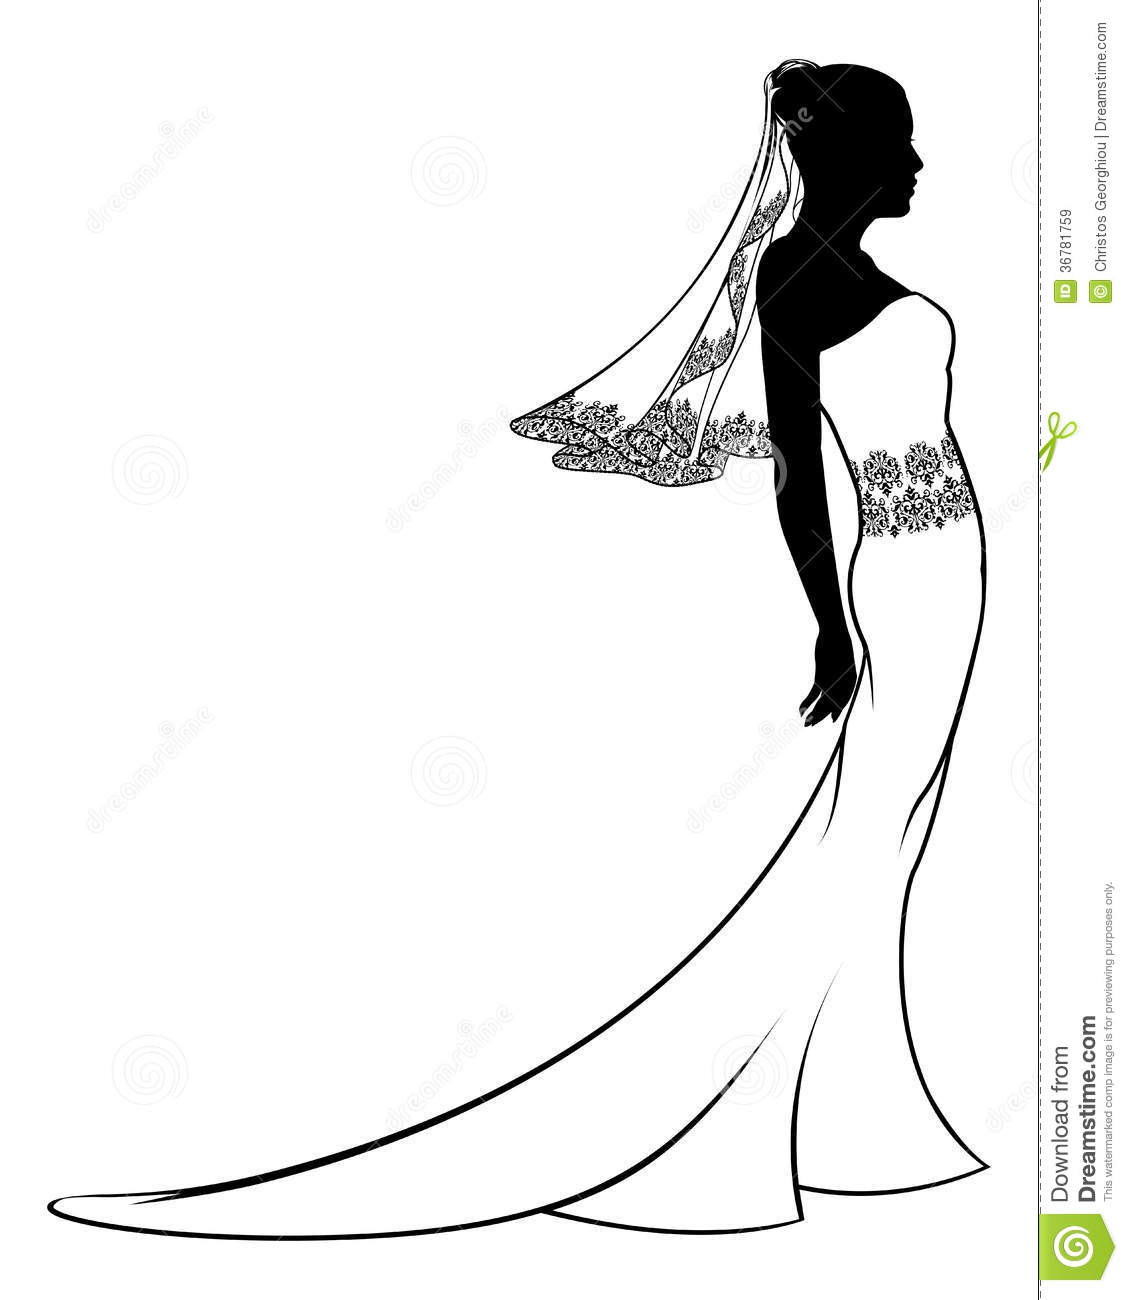 Bride Wedding Dress Silhouette Royalty Free Stock Images